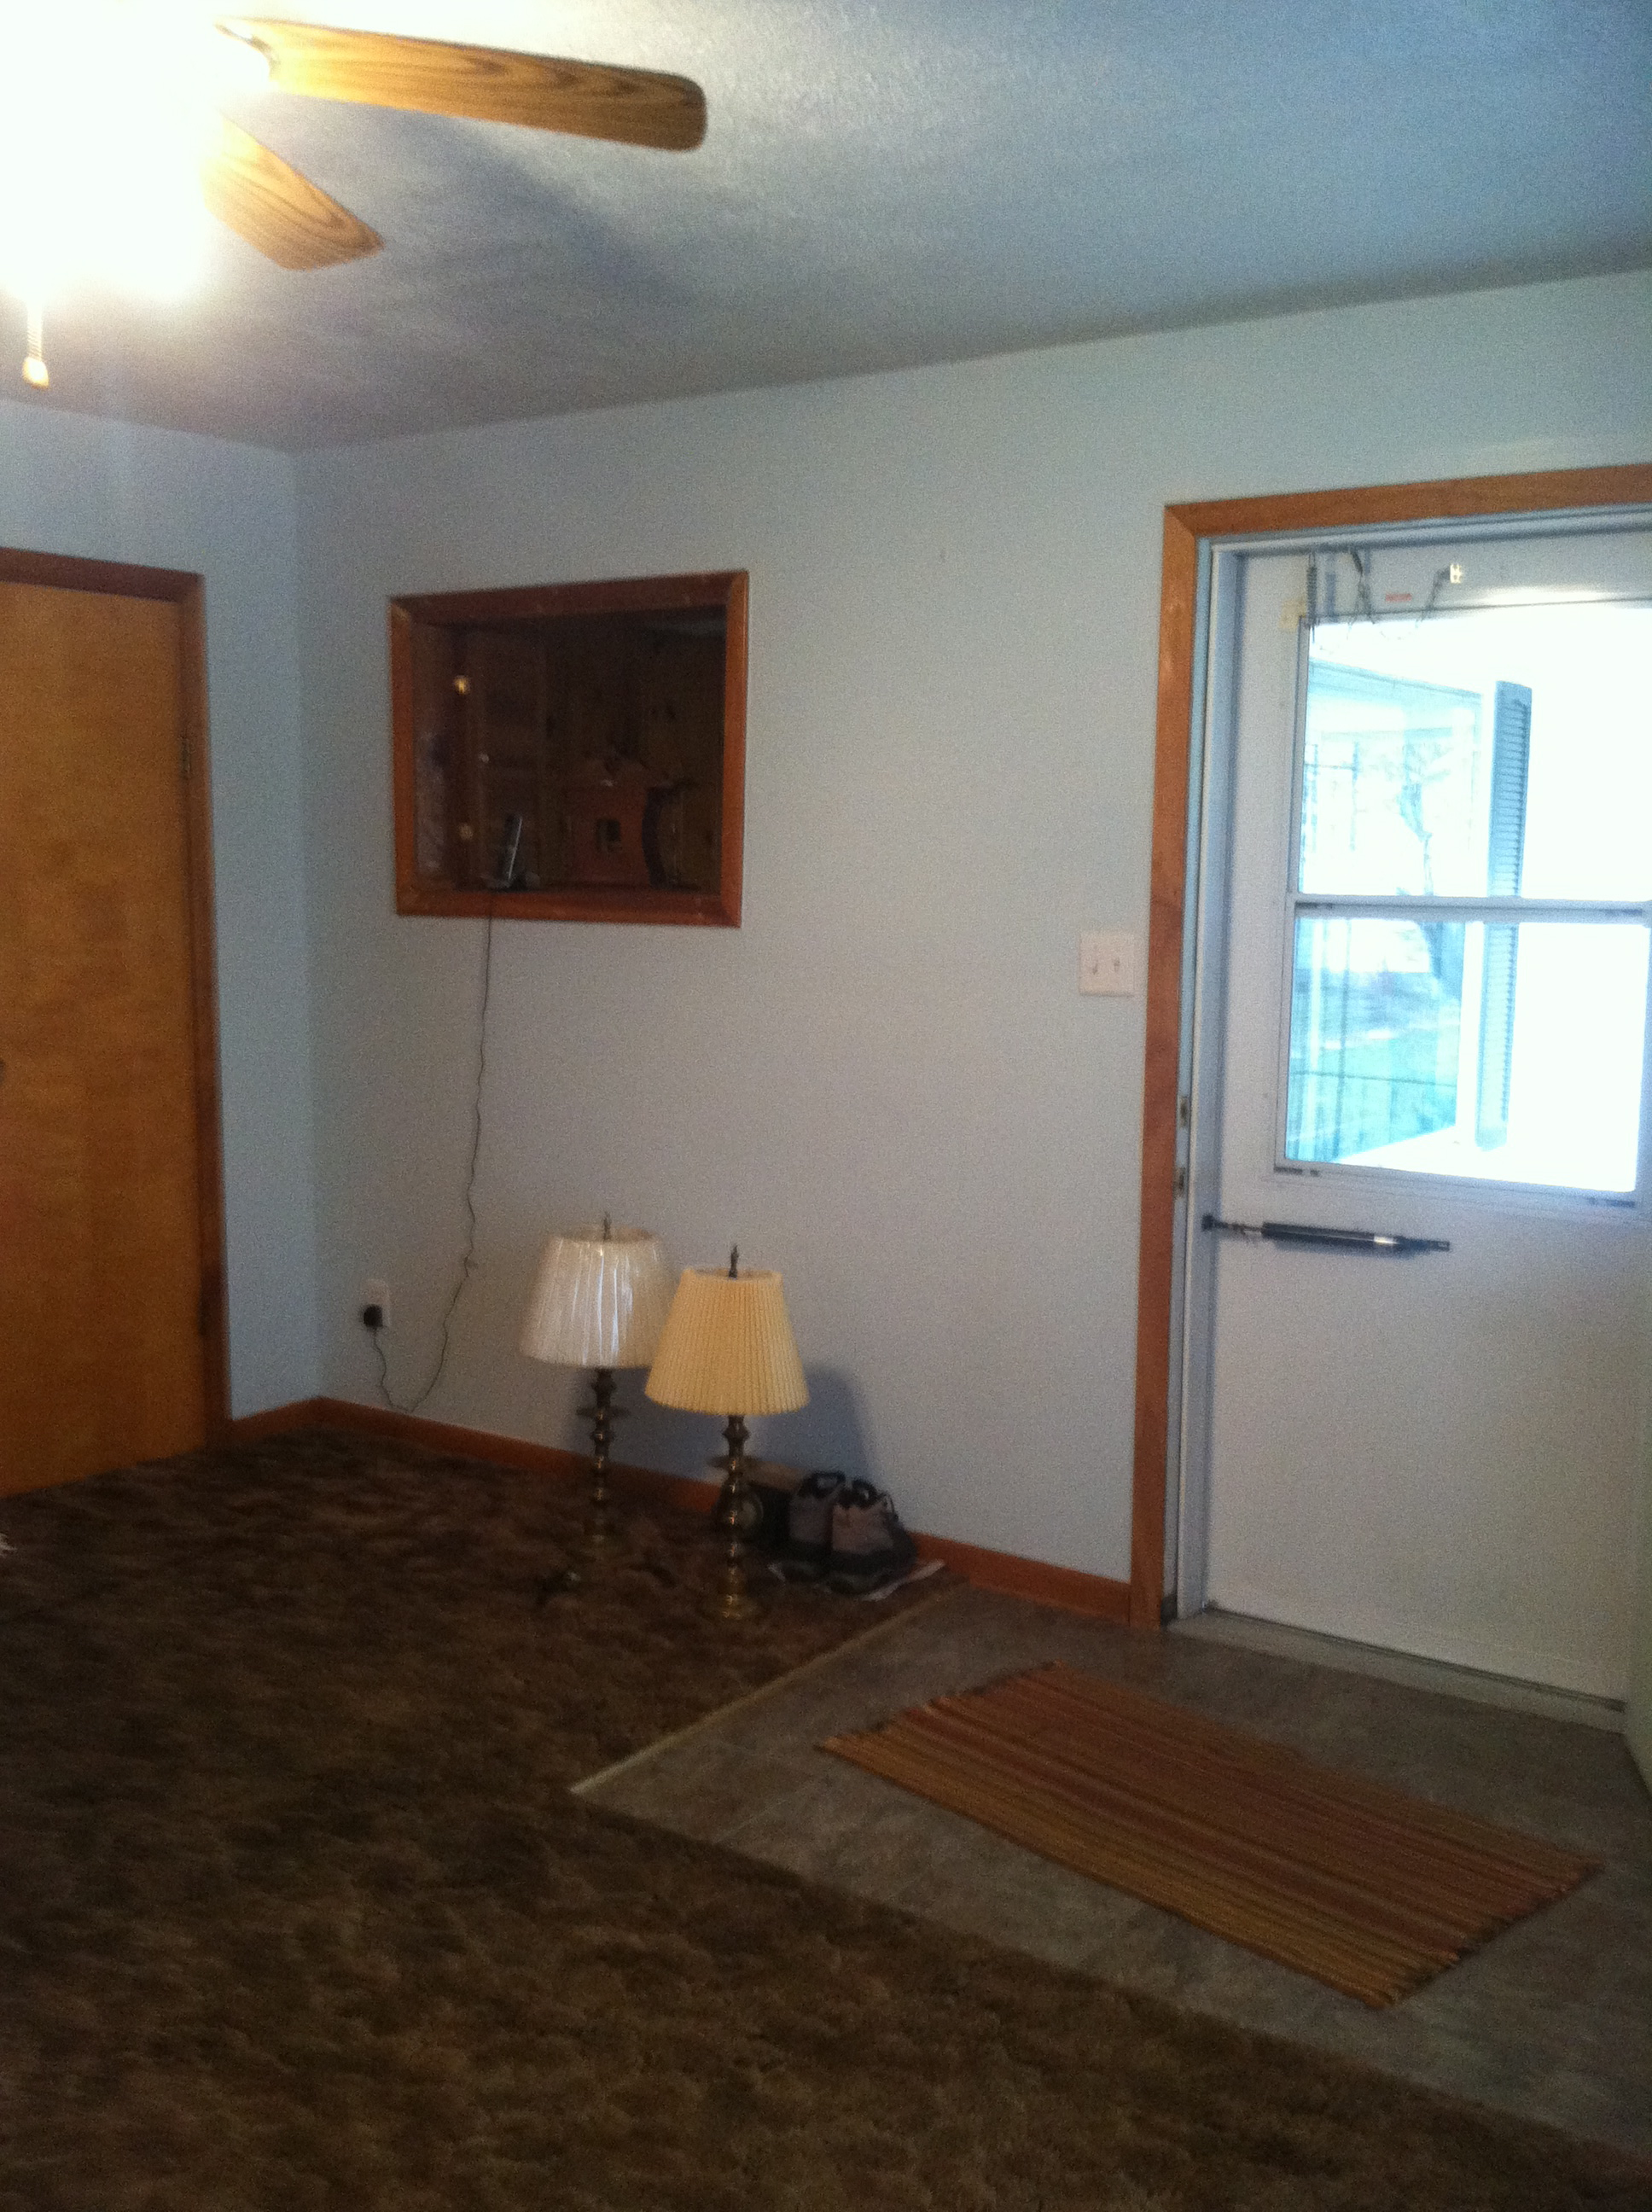 Transformation tuesday living room the glorious mundane Wood paneling transformation